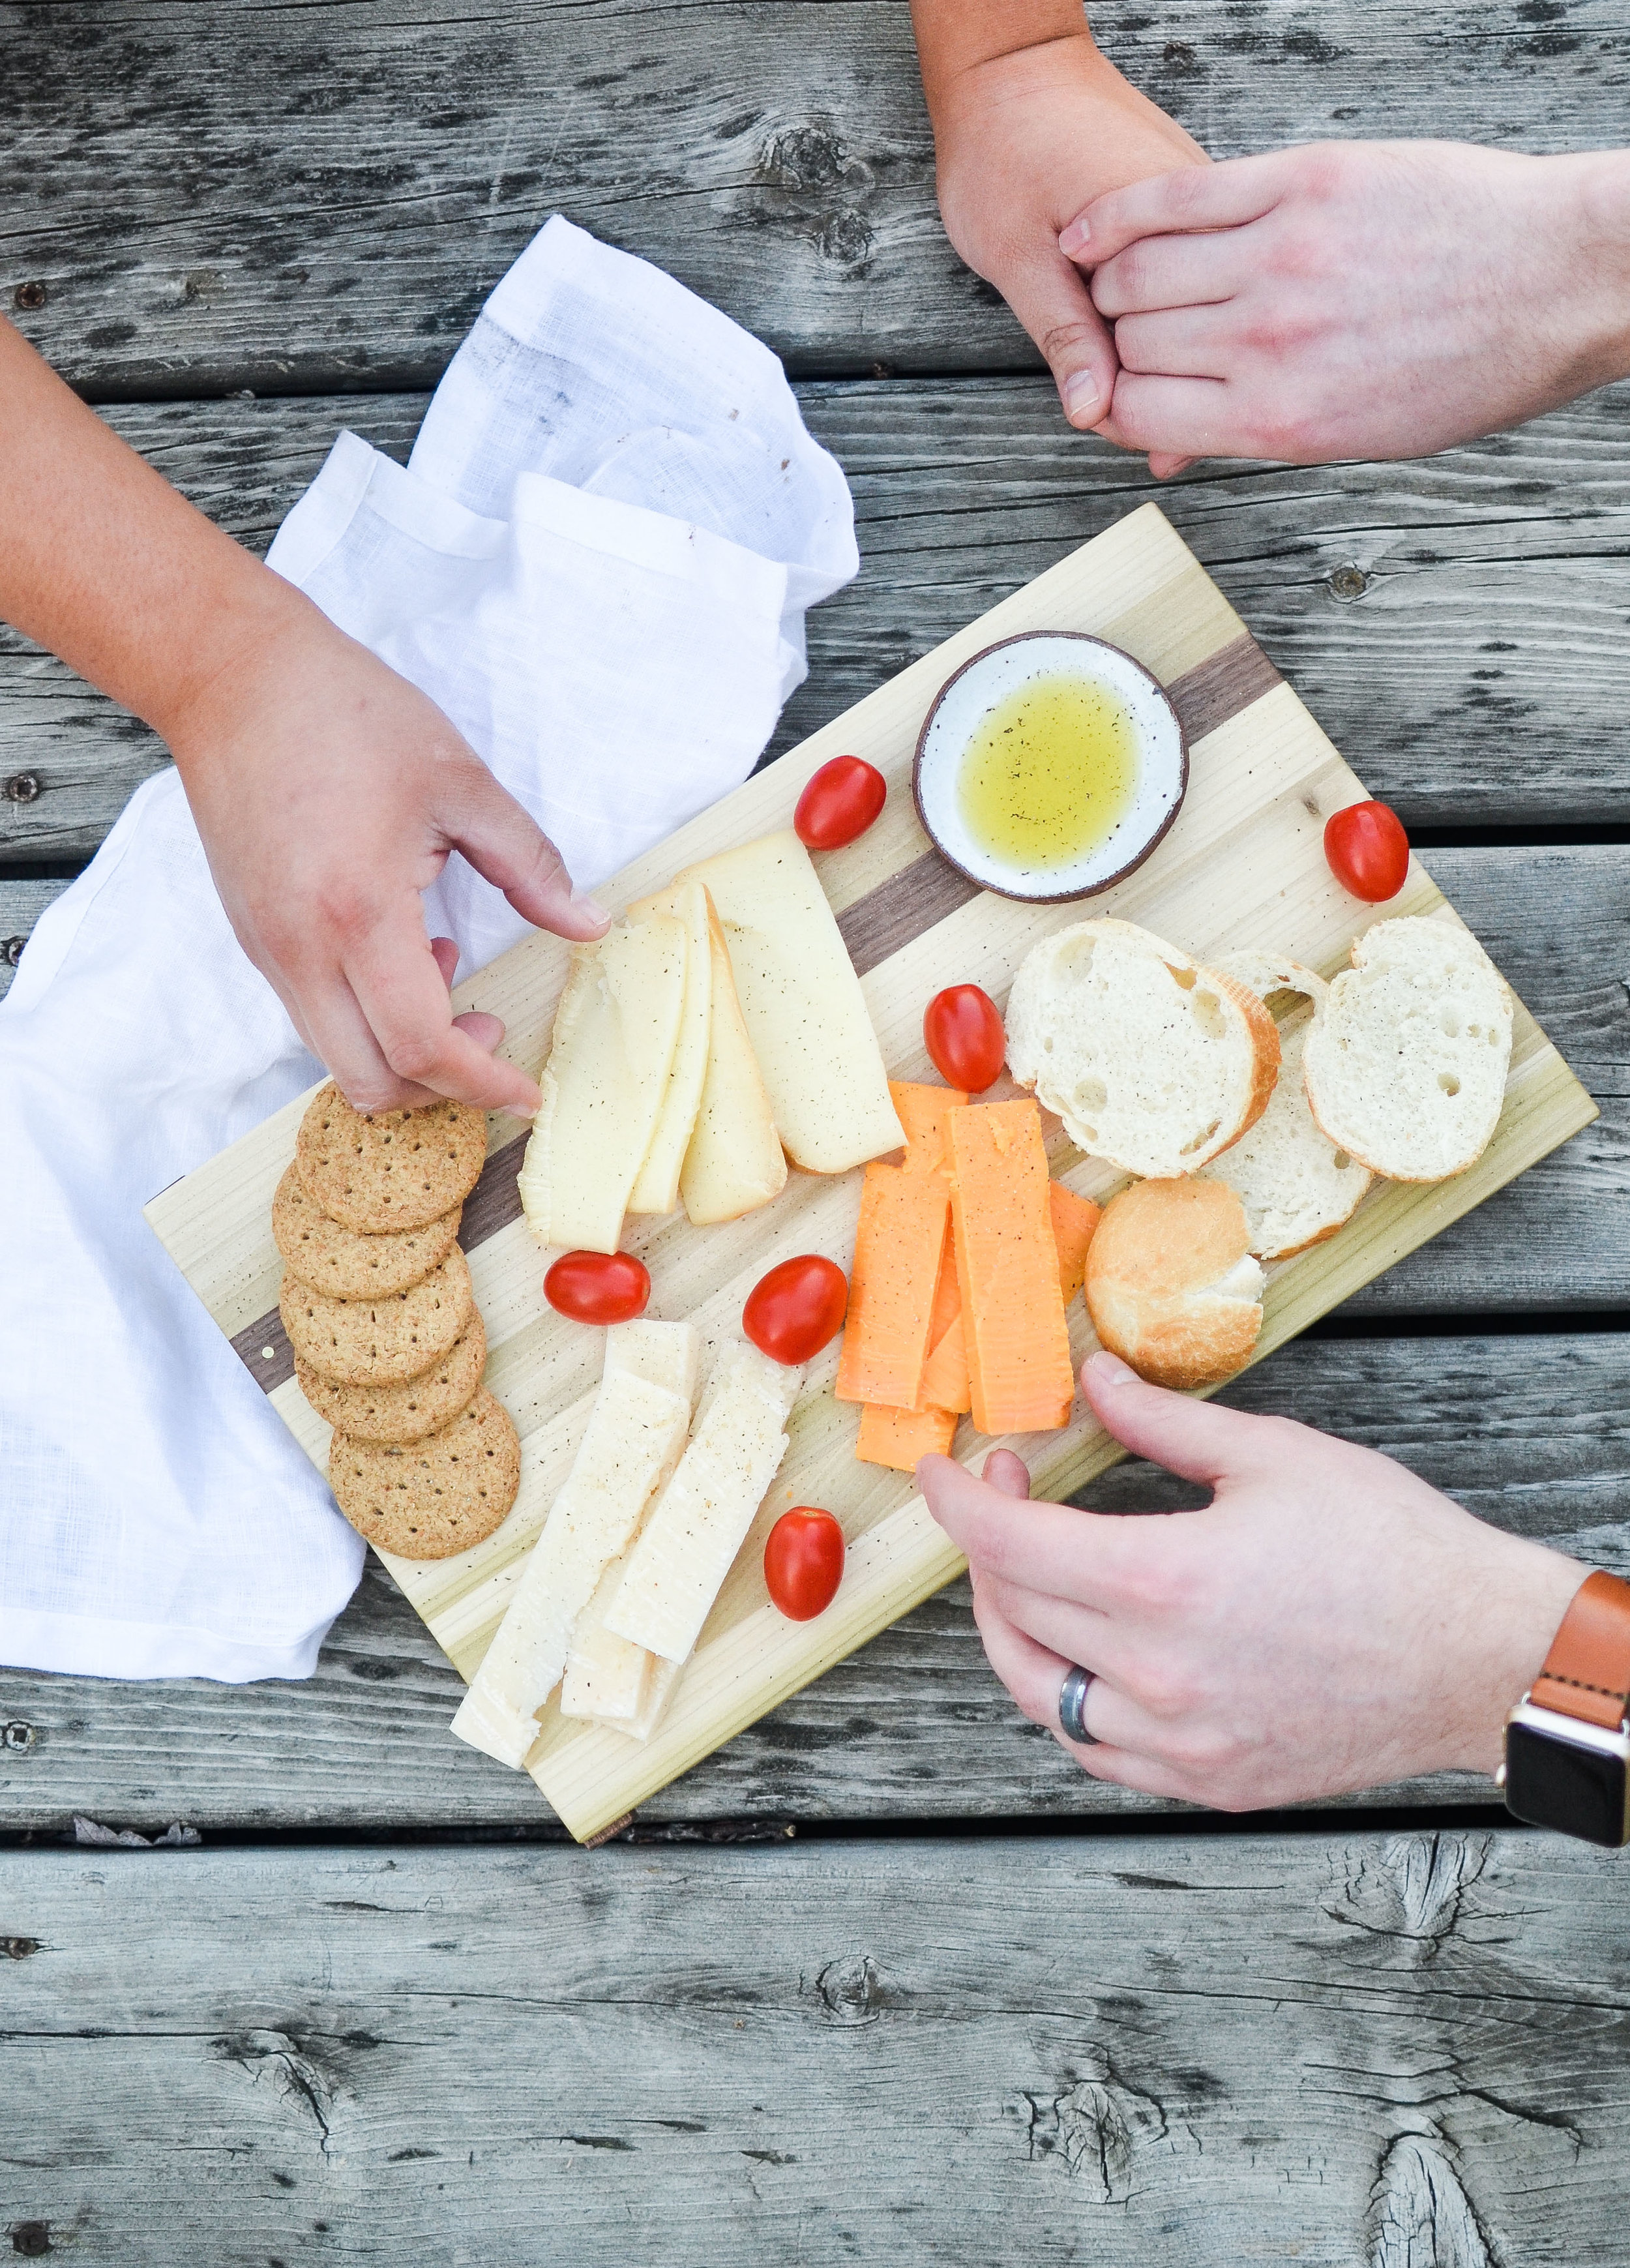 Wendling_Boyd_Gather_Table_Co_Charcuterie_Plate-4.jpg